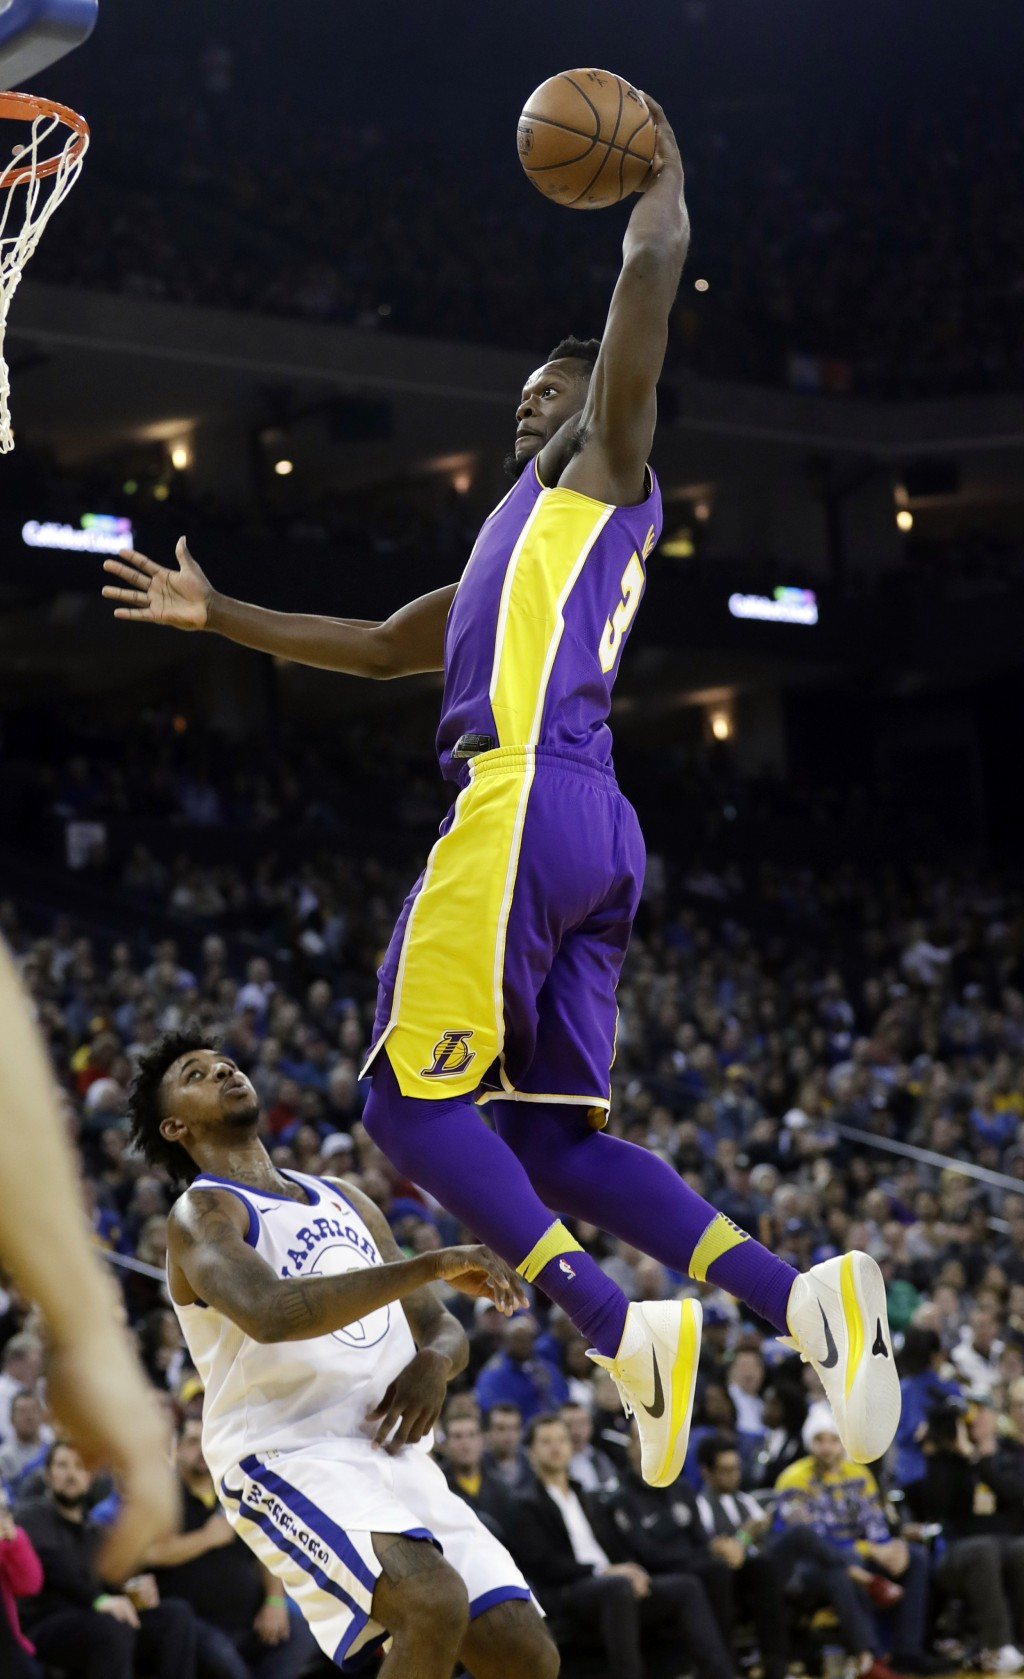 Los Angeles Lakers forward Julius Randle  dunks past Golden State Warriors guard Nick Young during the first half of an NBA basketball game Friday, De...